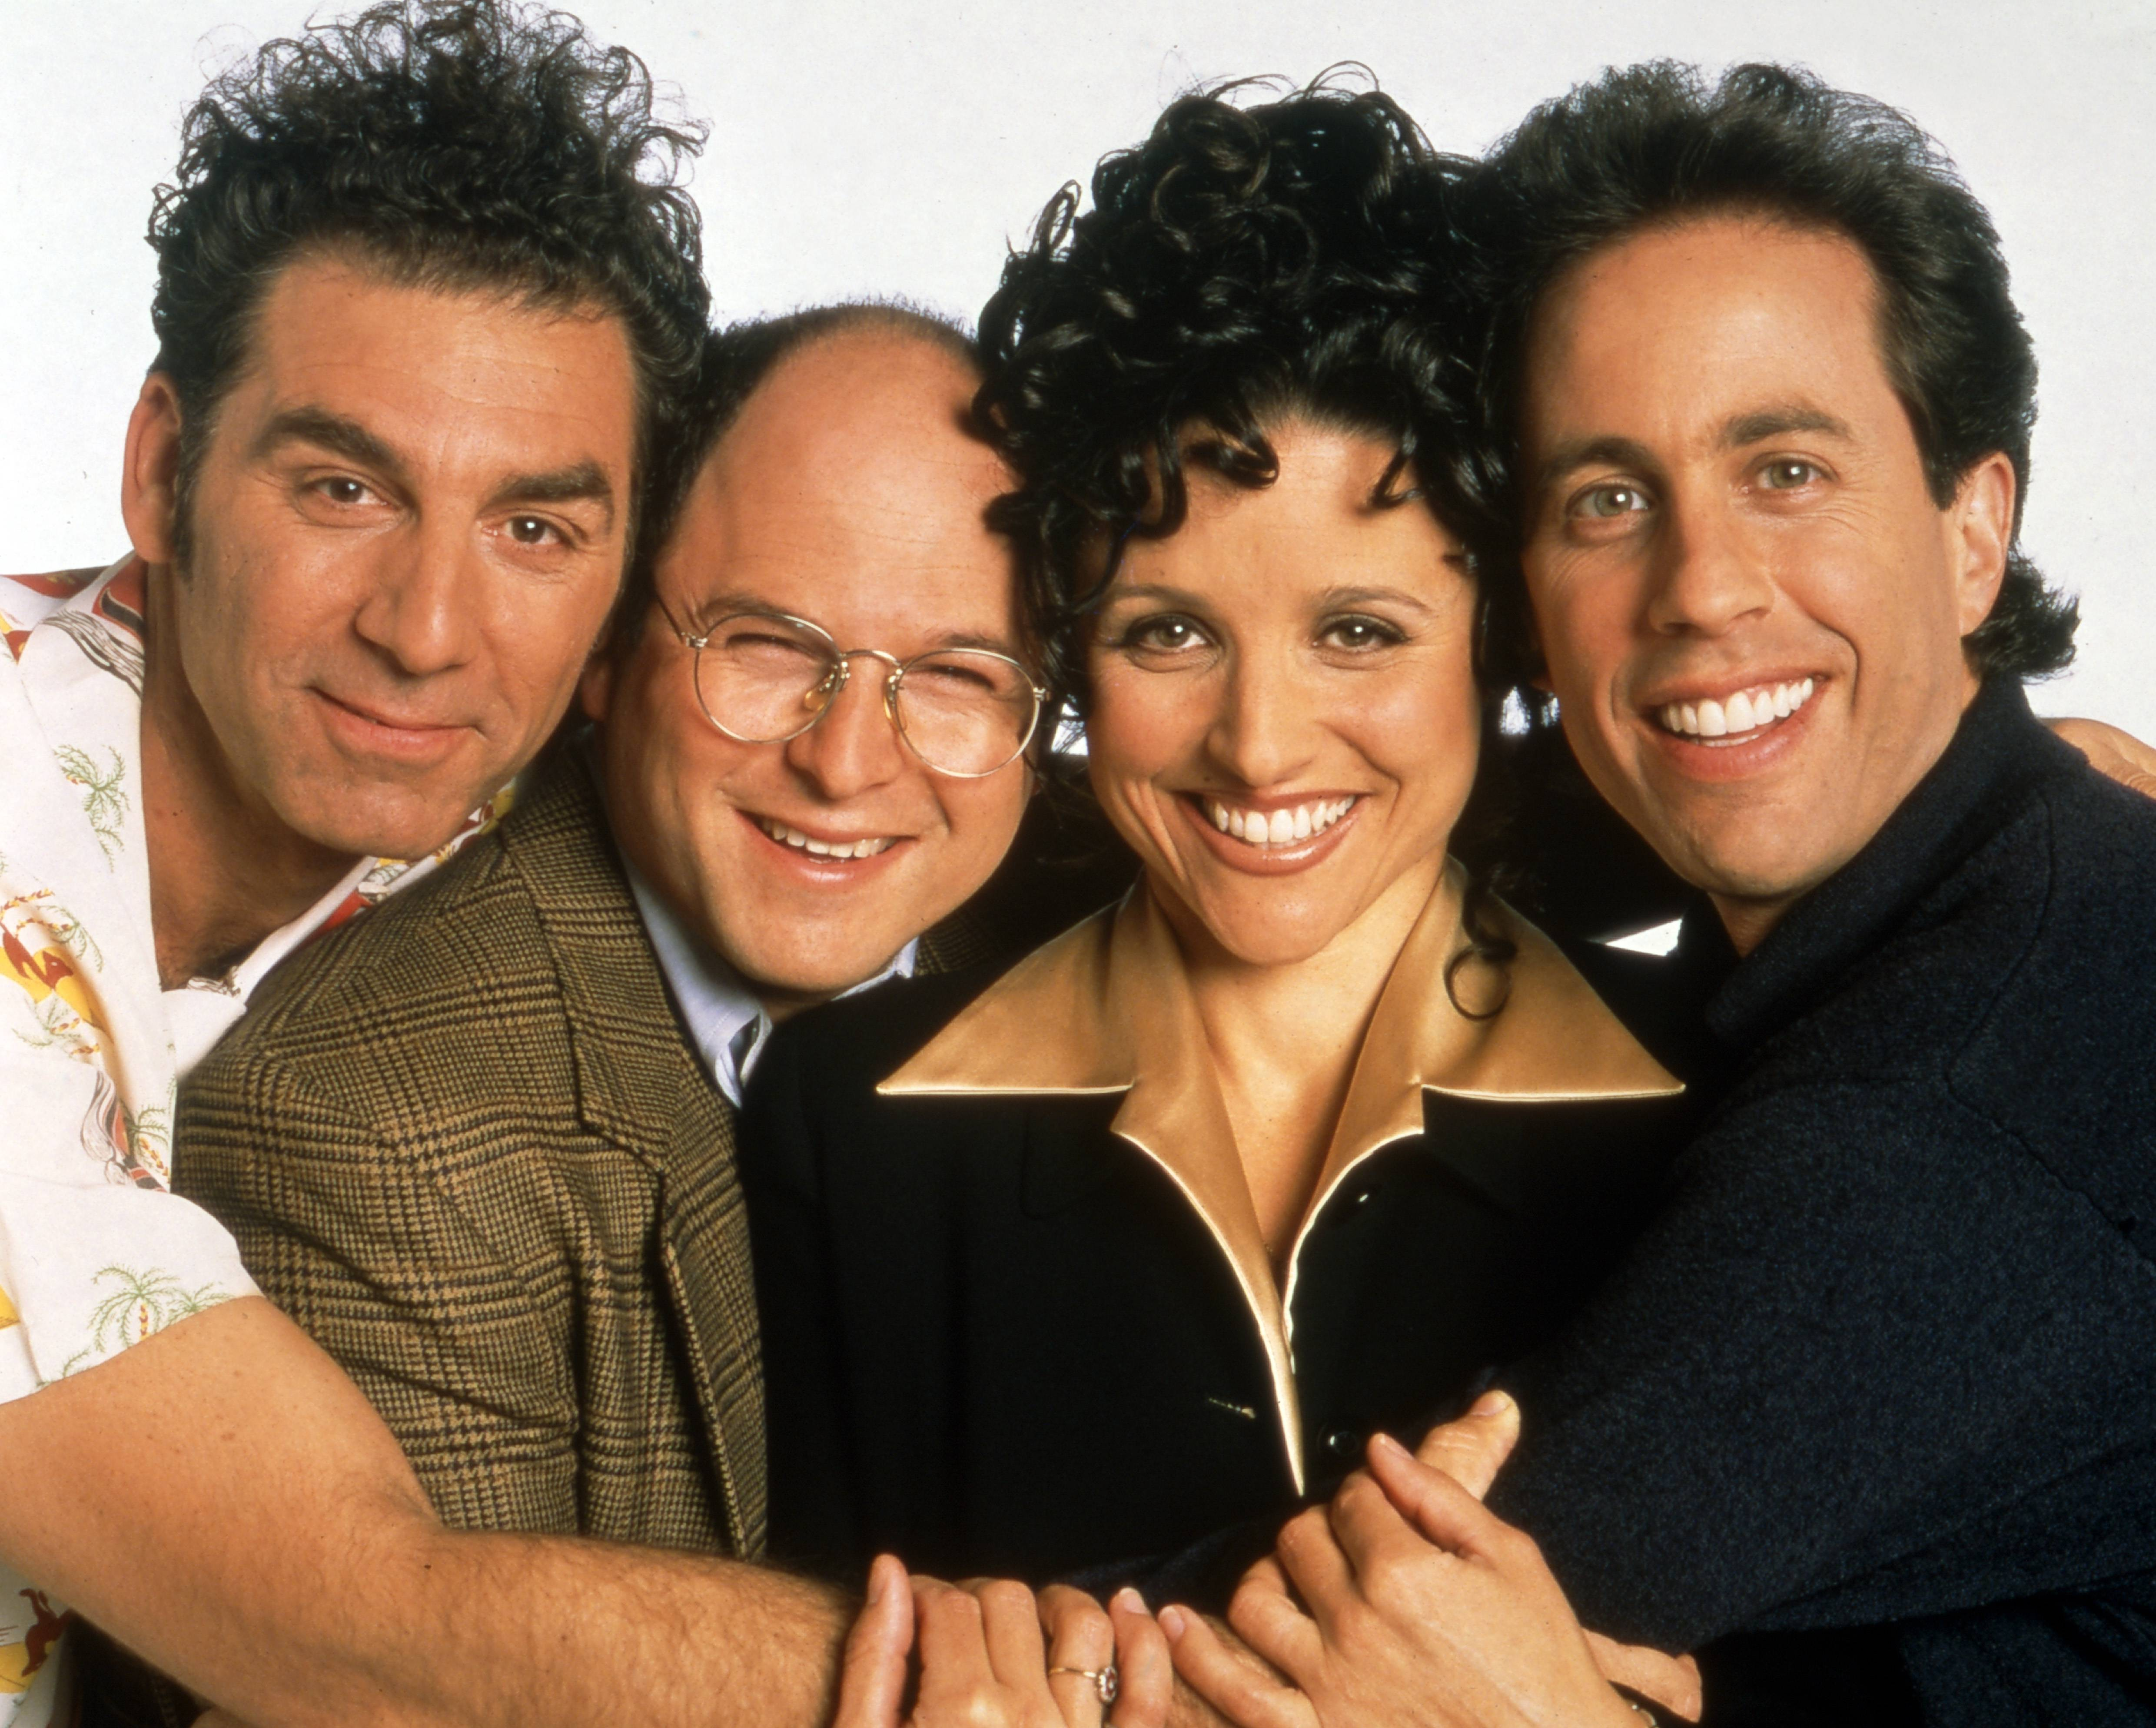 Seinfeld, USA 1990 - 1998, TV Comedy Serie, Darsteller: Jerry Seinfeld, Julia Louis Dreyfus, Jason Alexander, Michael Richard